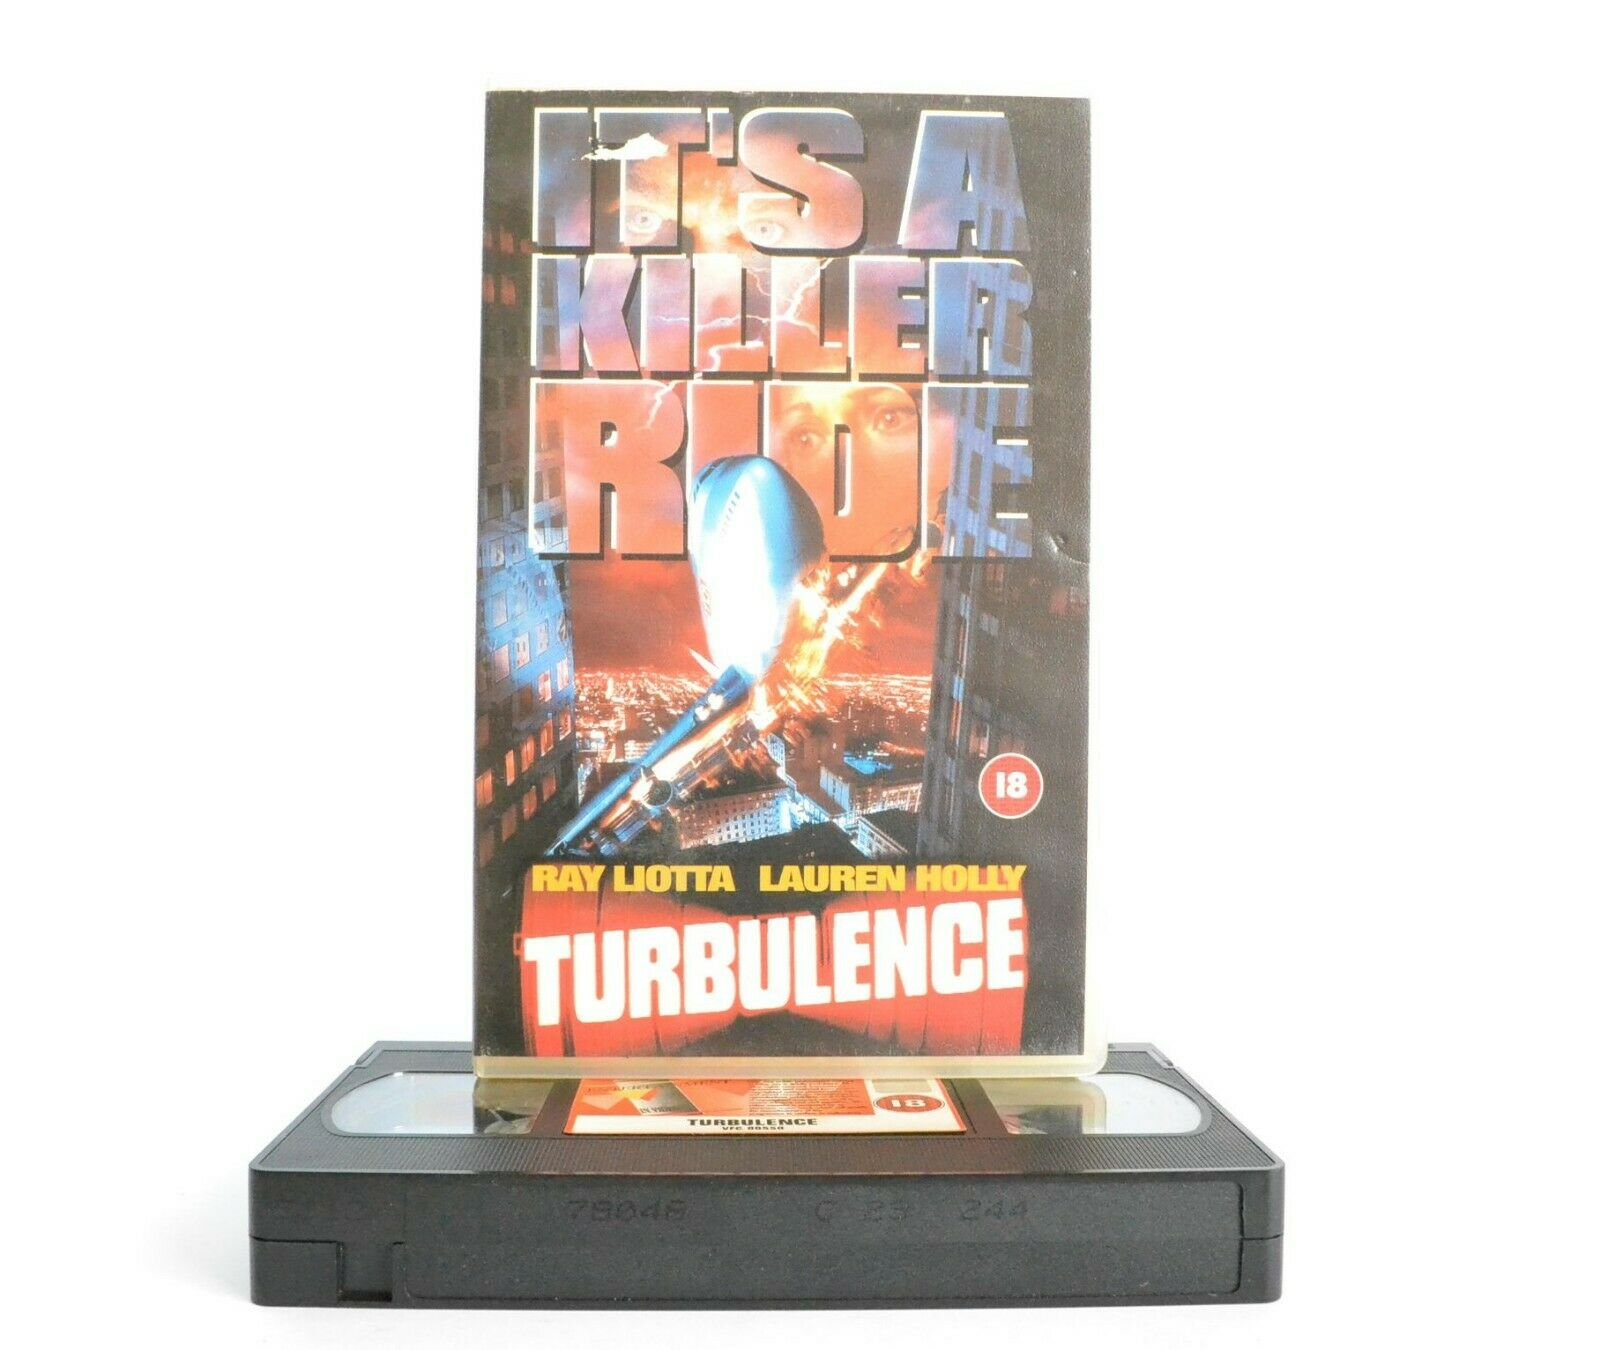 Turbulence: Distaster Crime Thriller - Large Box - Ray Liotta/Lauren Holly - VHS